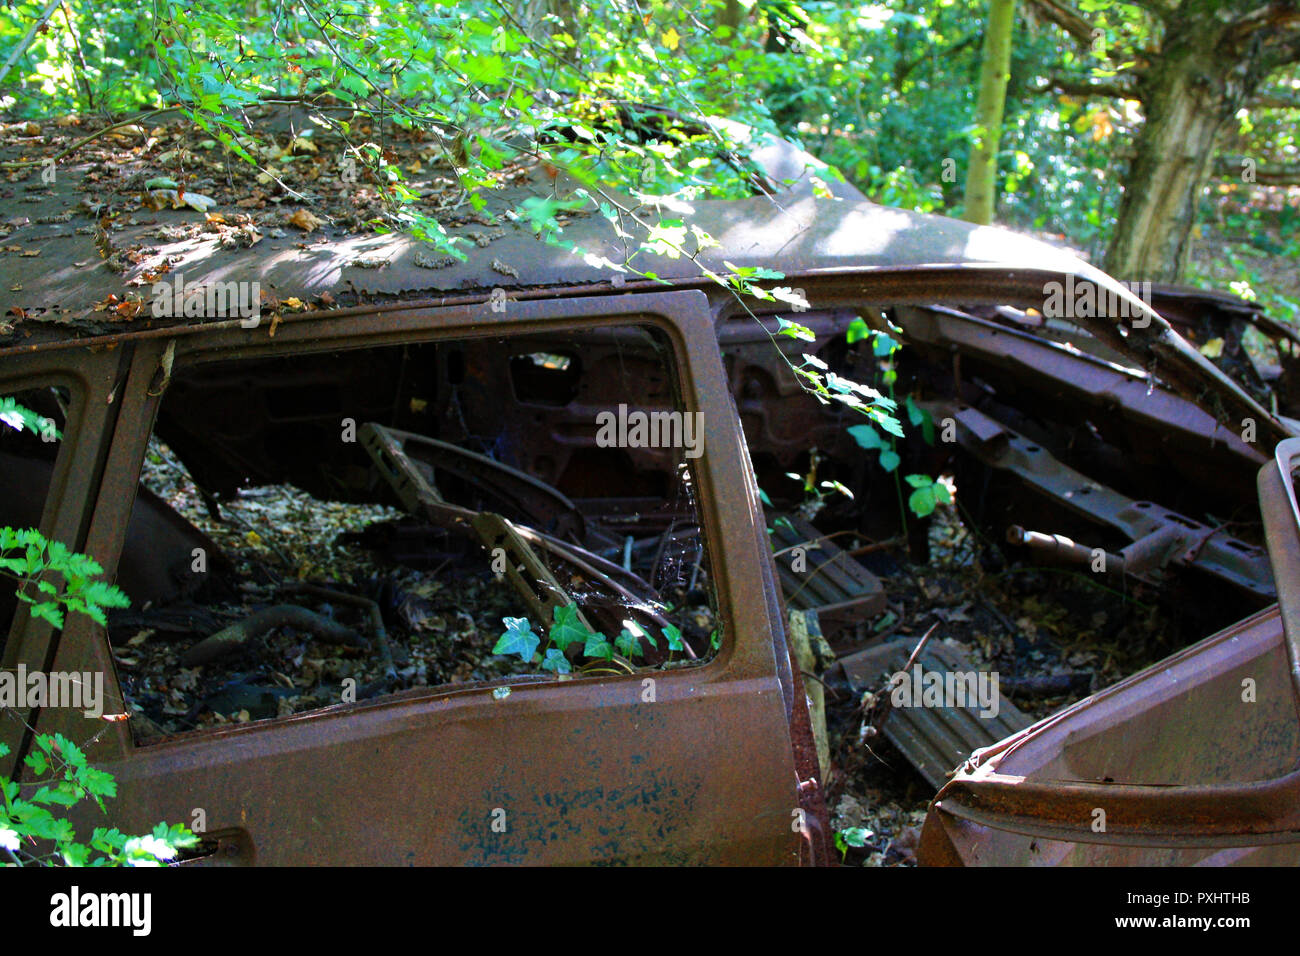 A Rusty Abandoned Car In Woods Essex England Stock Photo